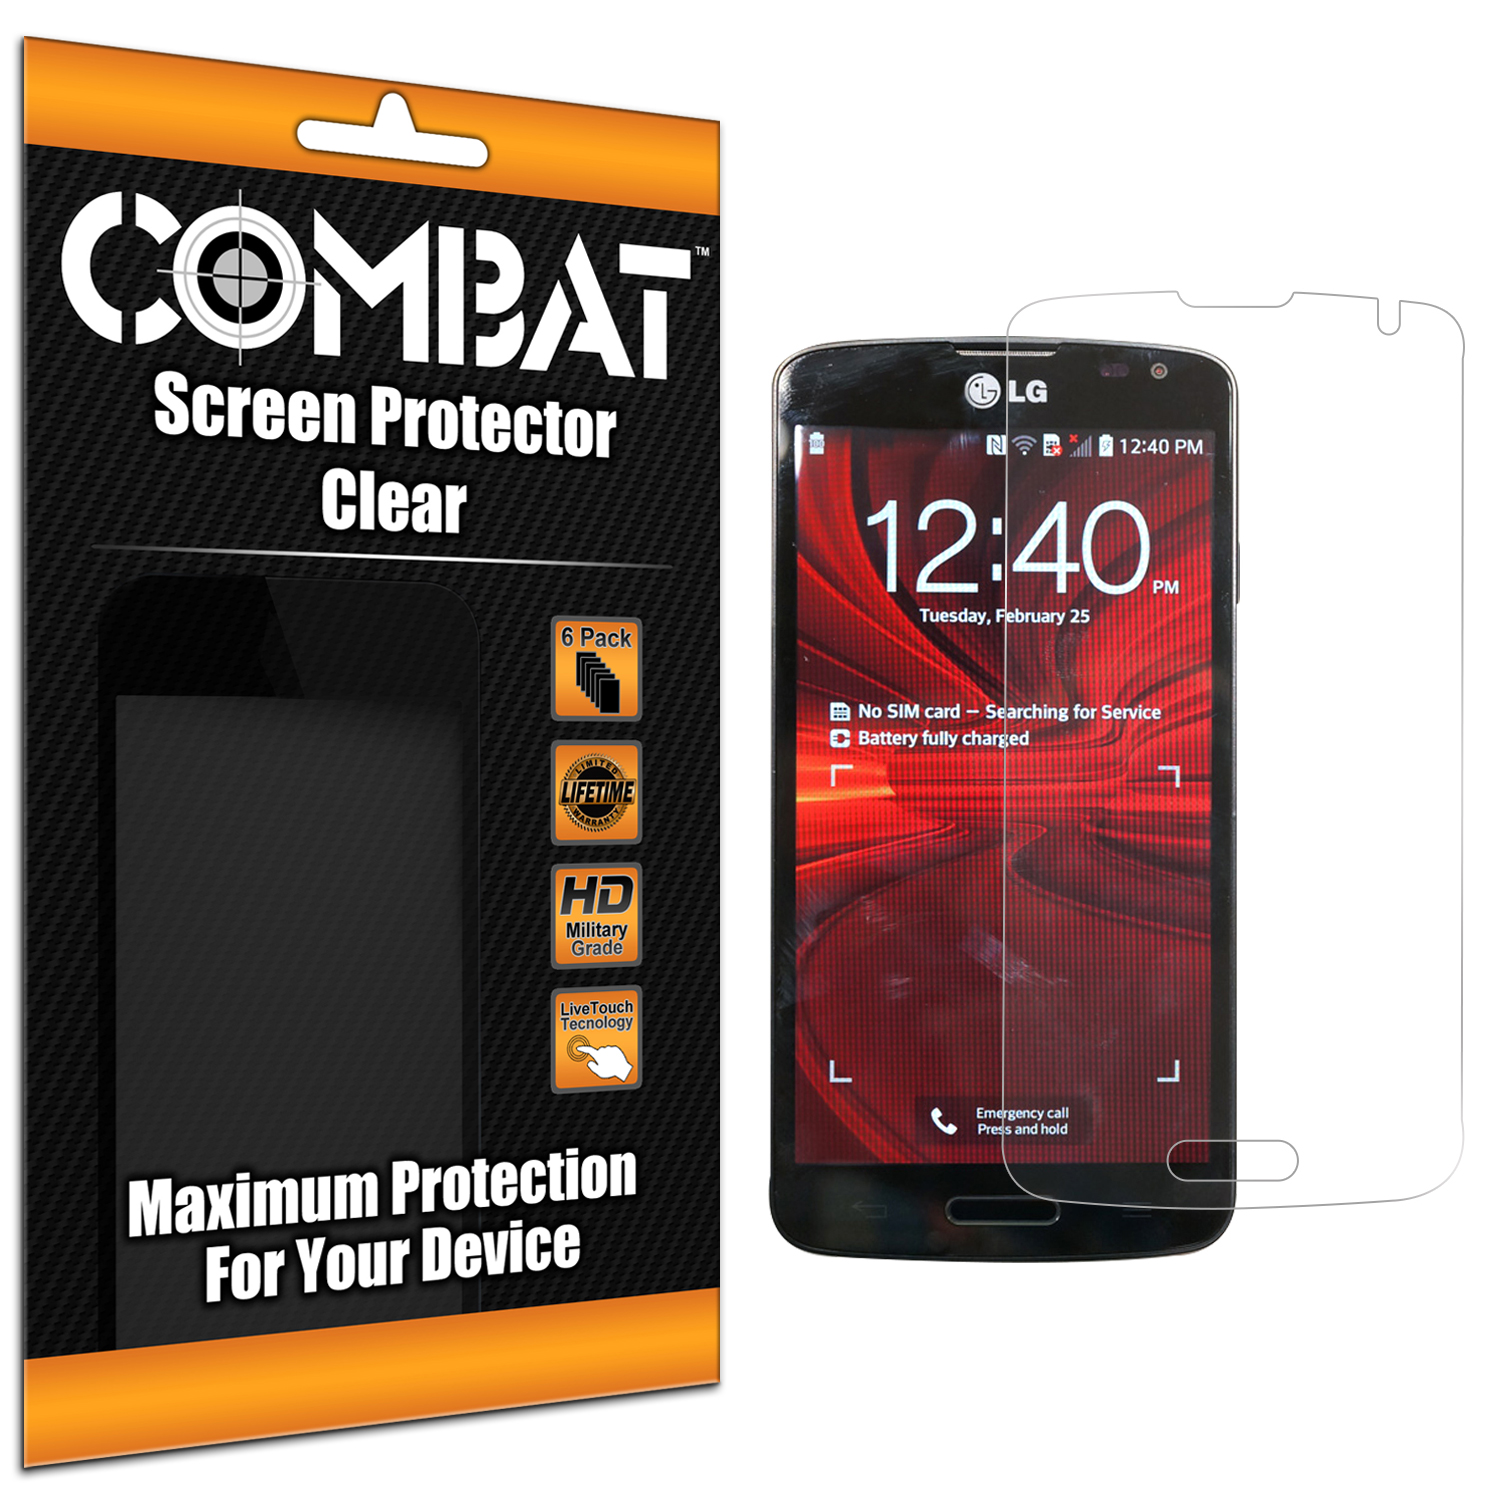 LG Volt LS740 Combat 6 Pack HD Clear Screen Protector